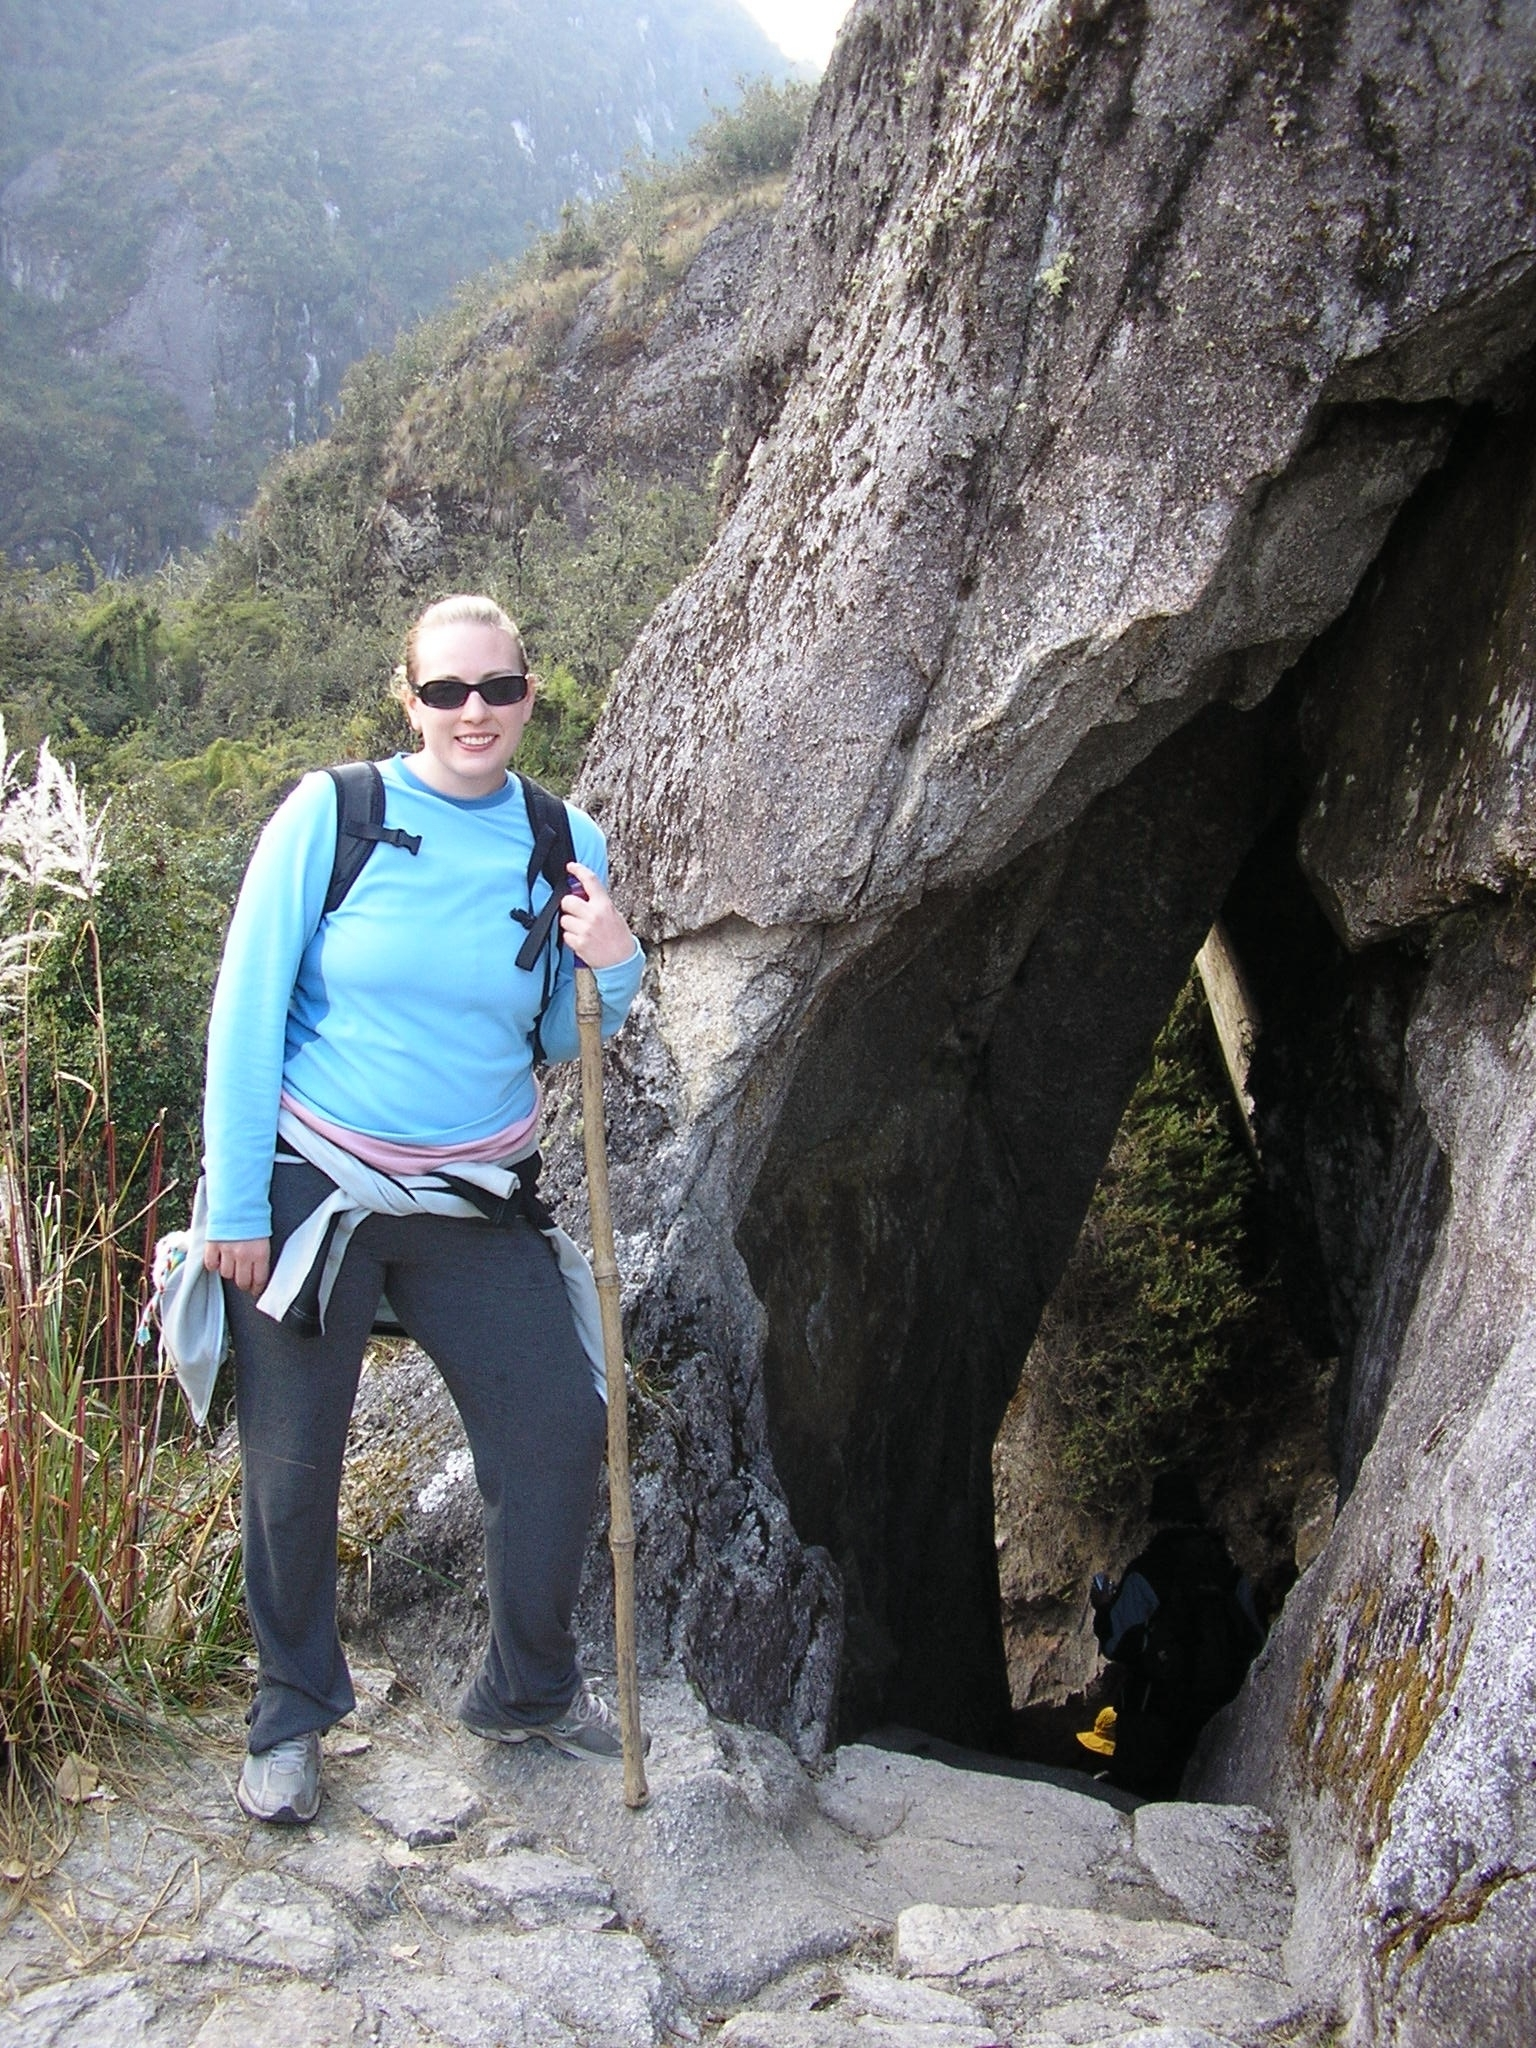 Hurts So Good: Advice for the Inca Trail